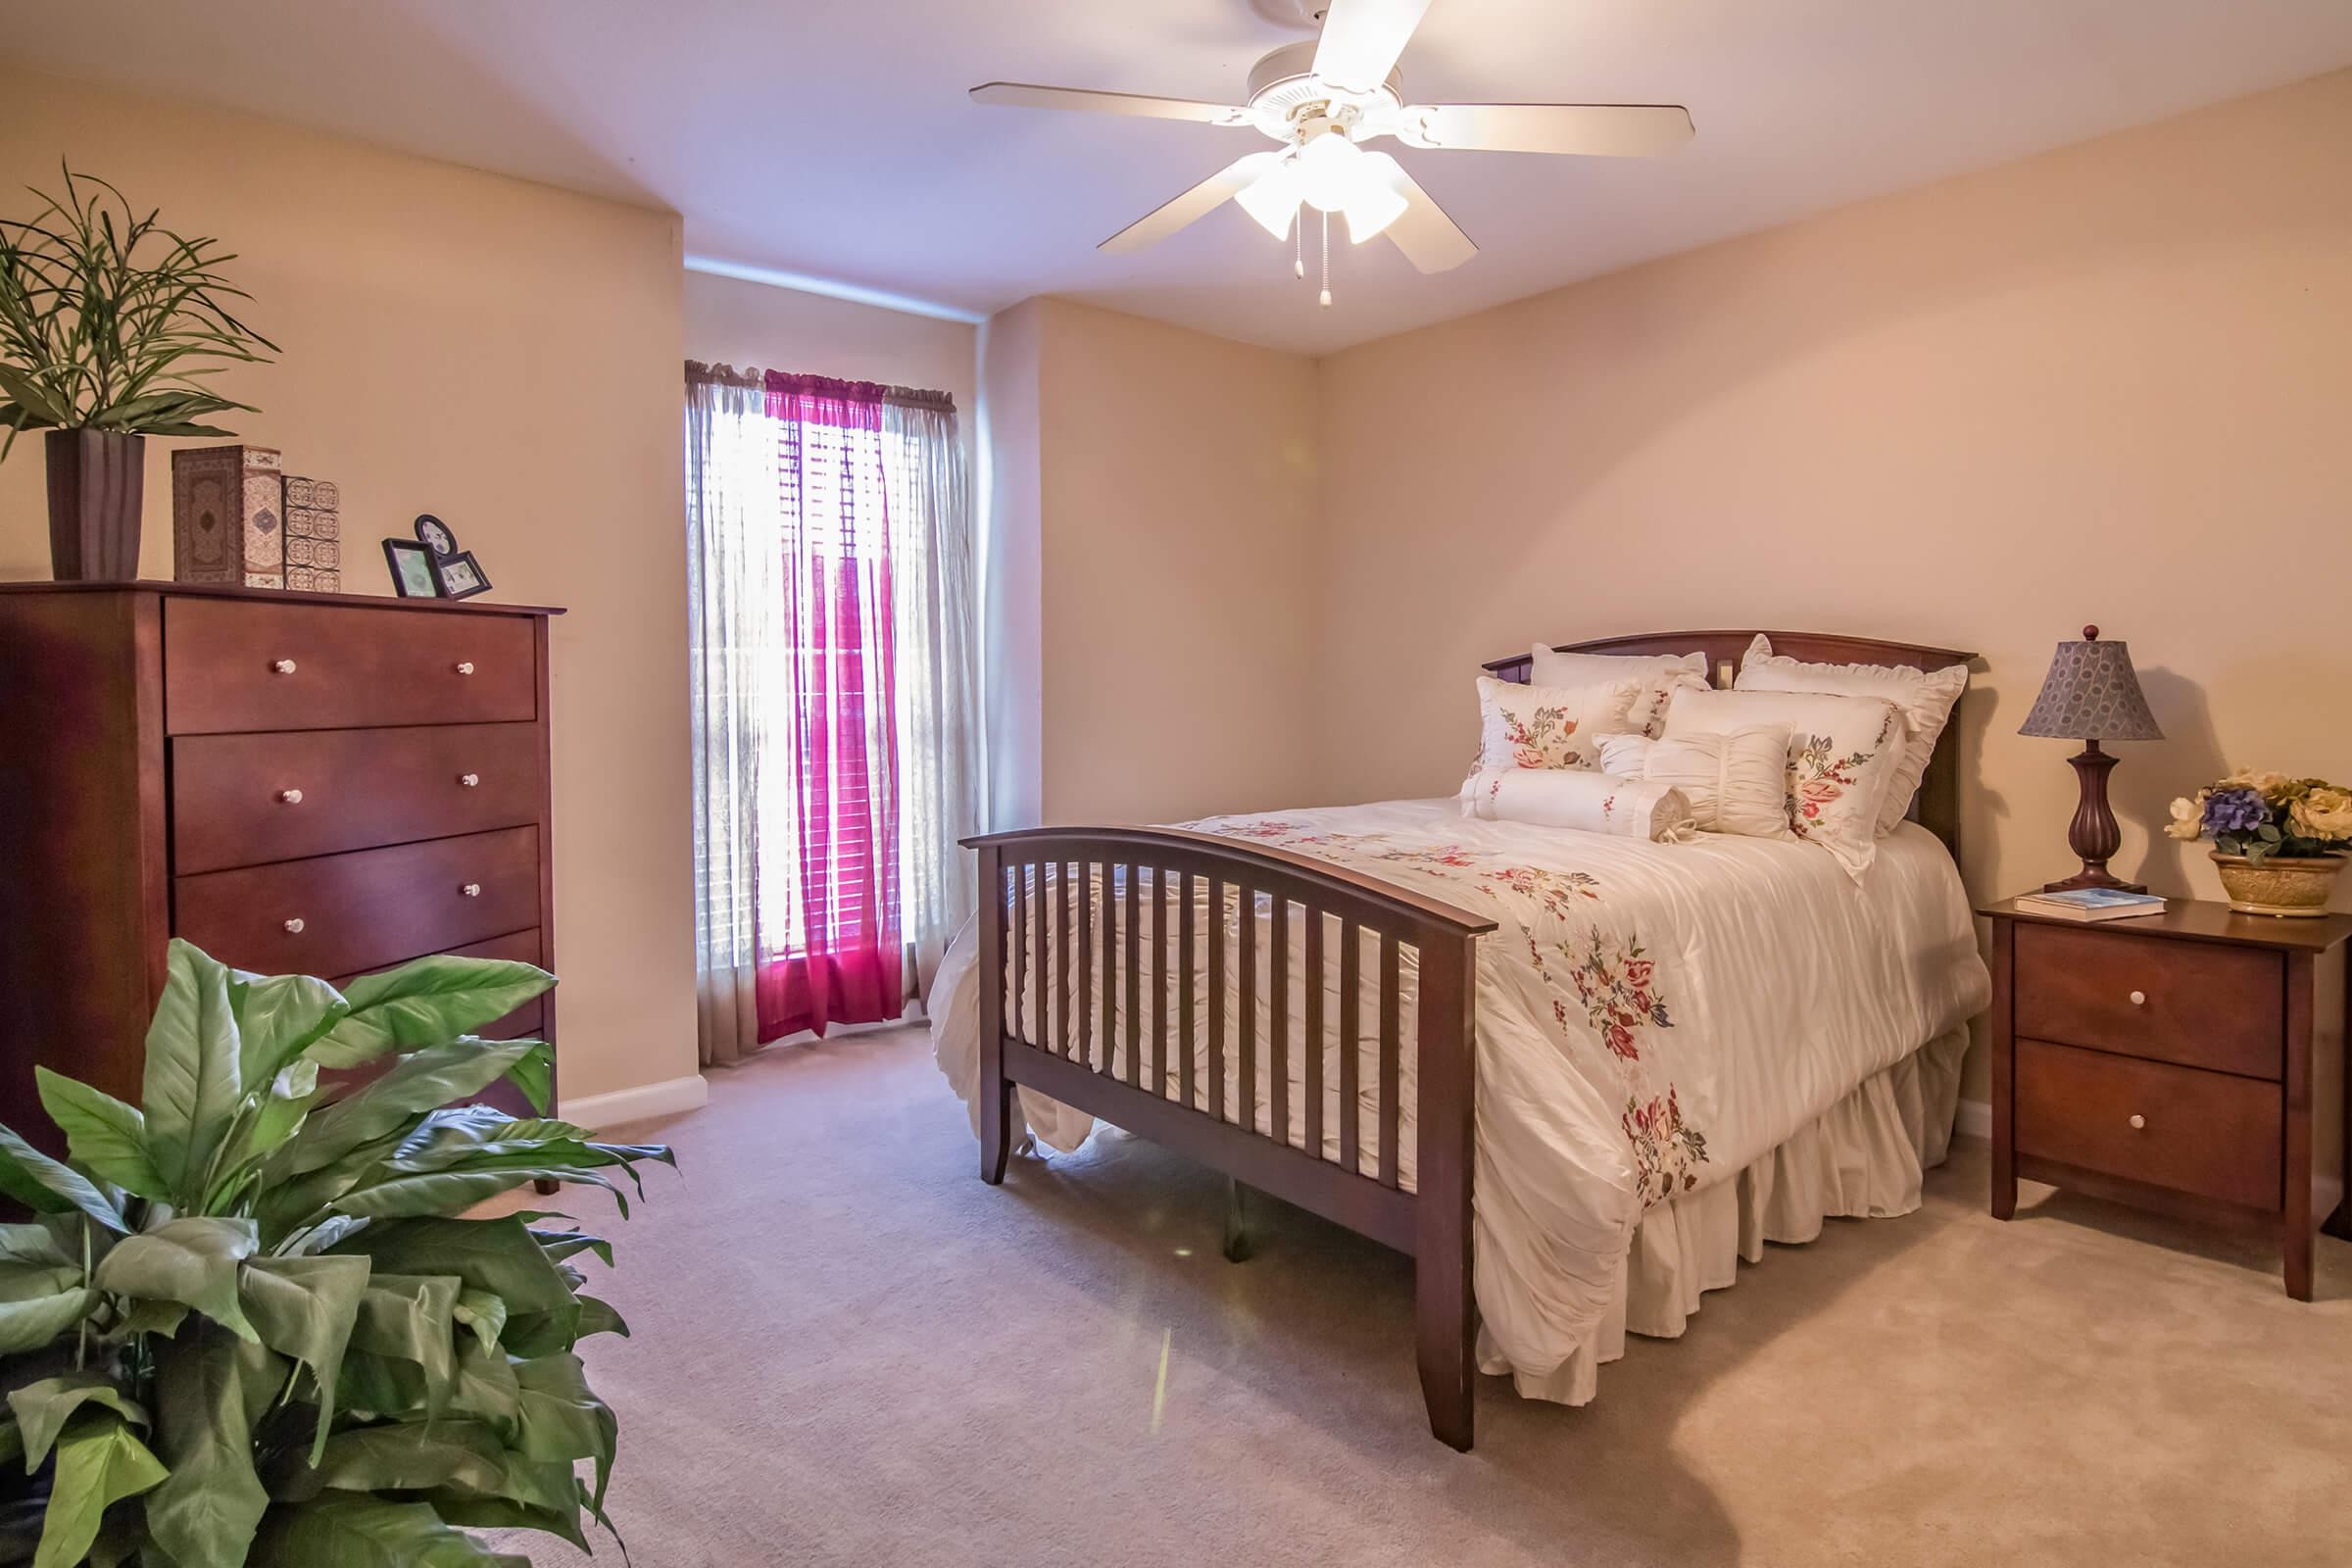 a bedroom with a bed and furniture in a room